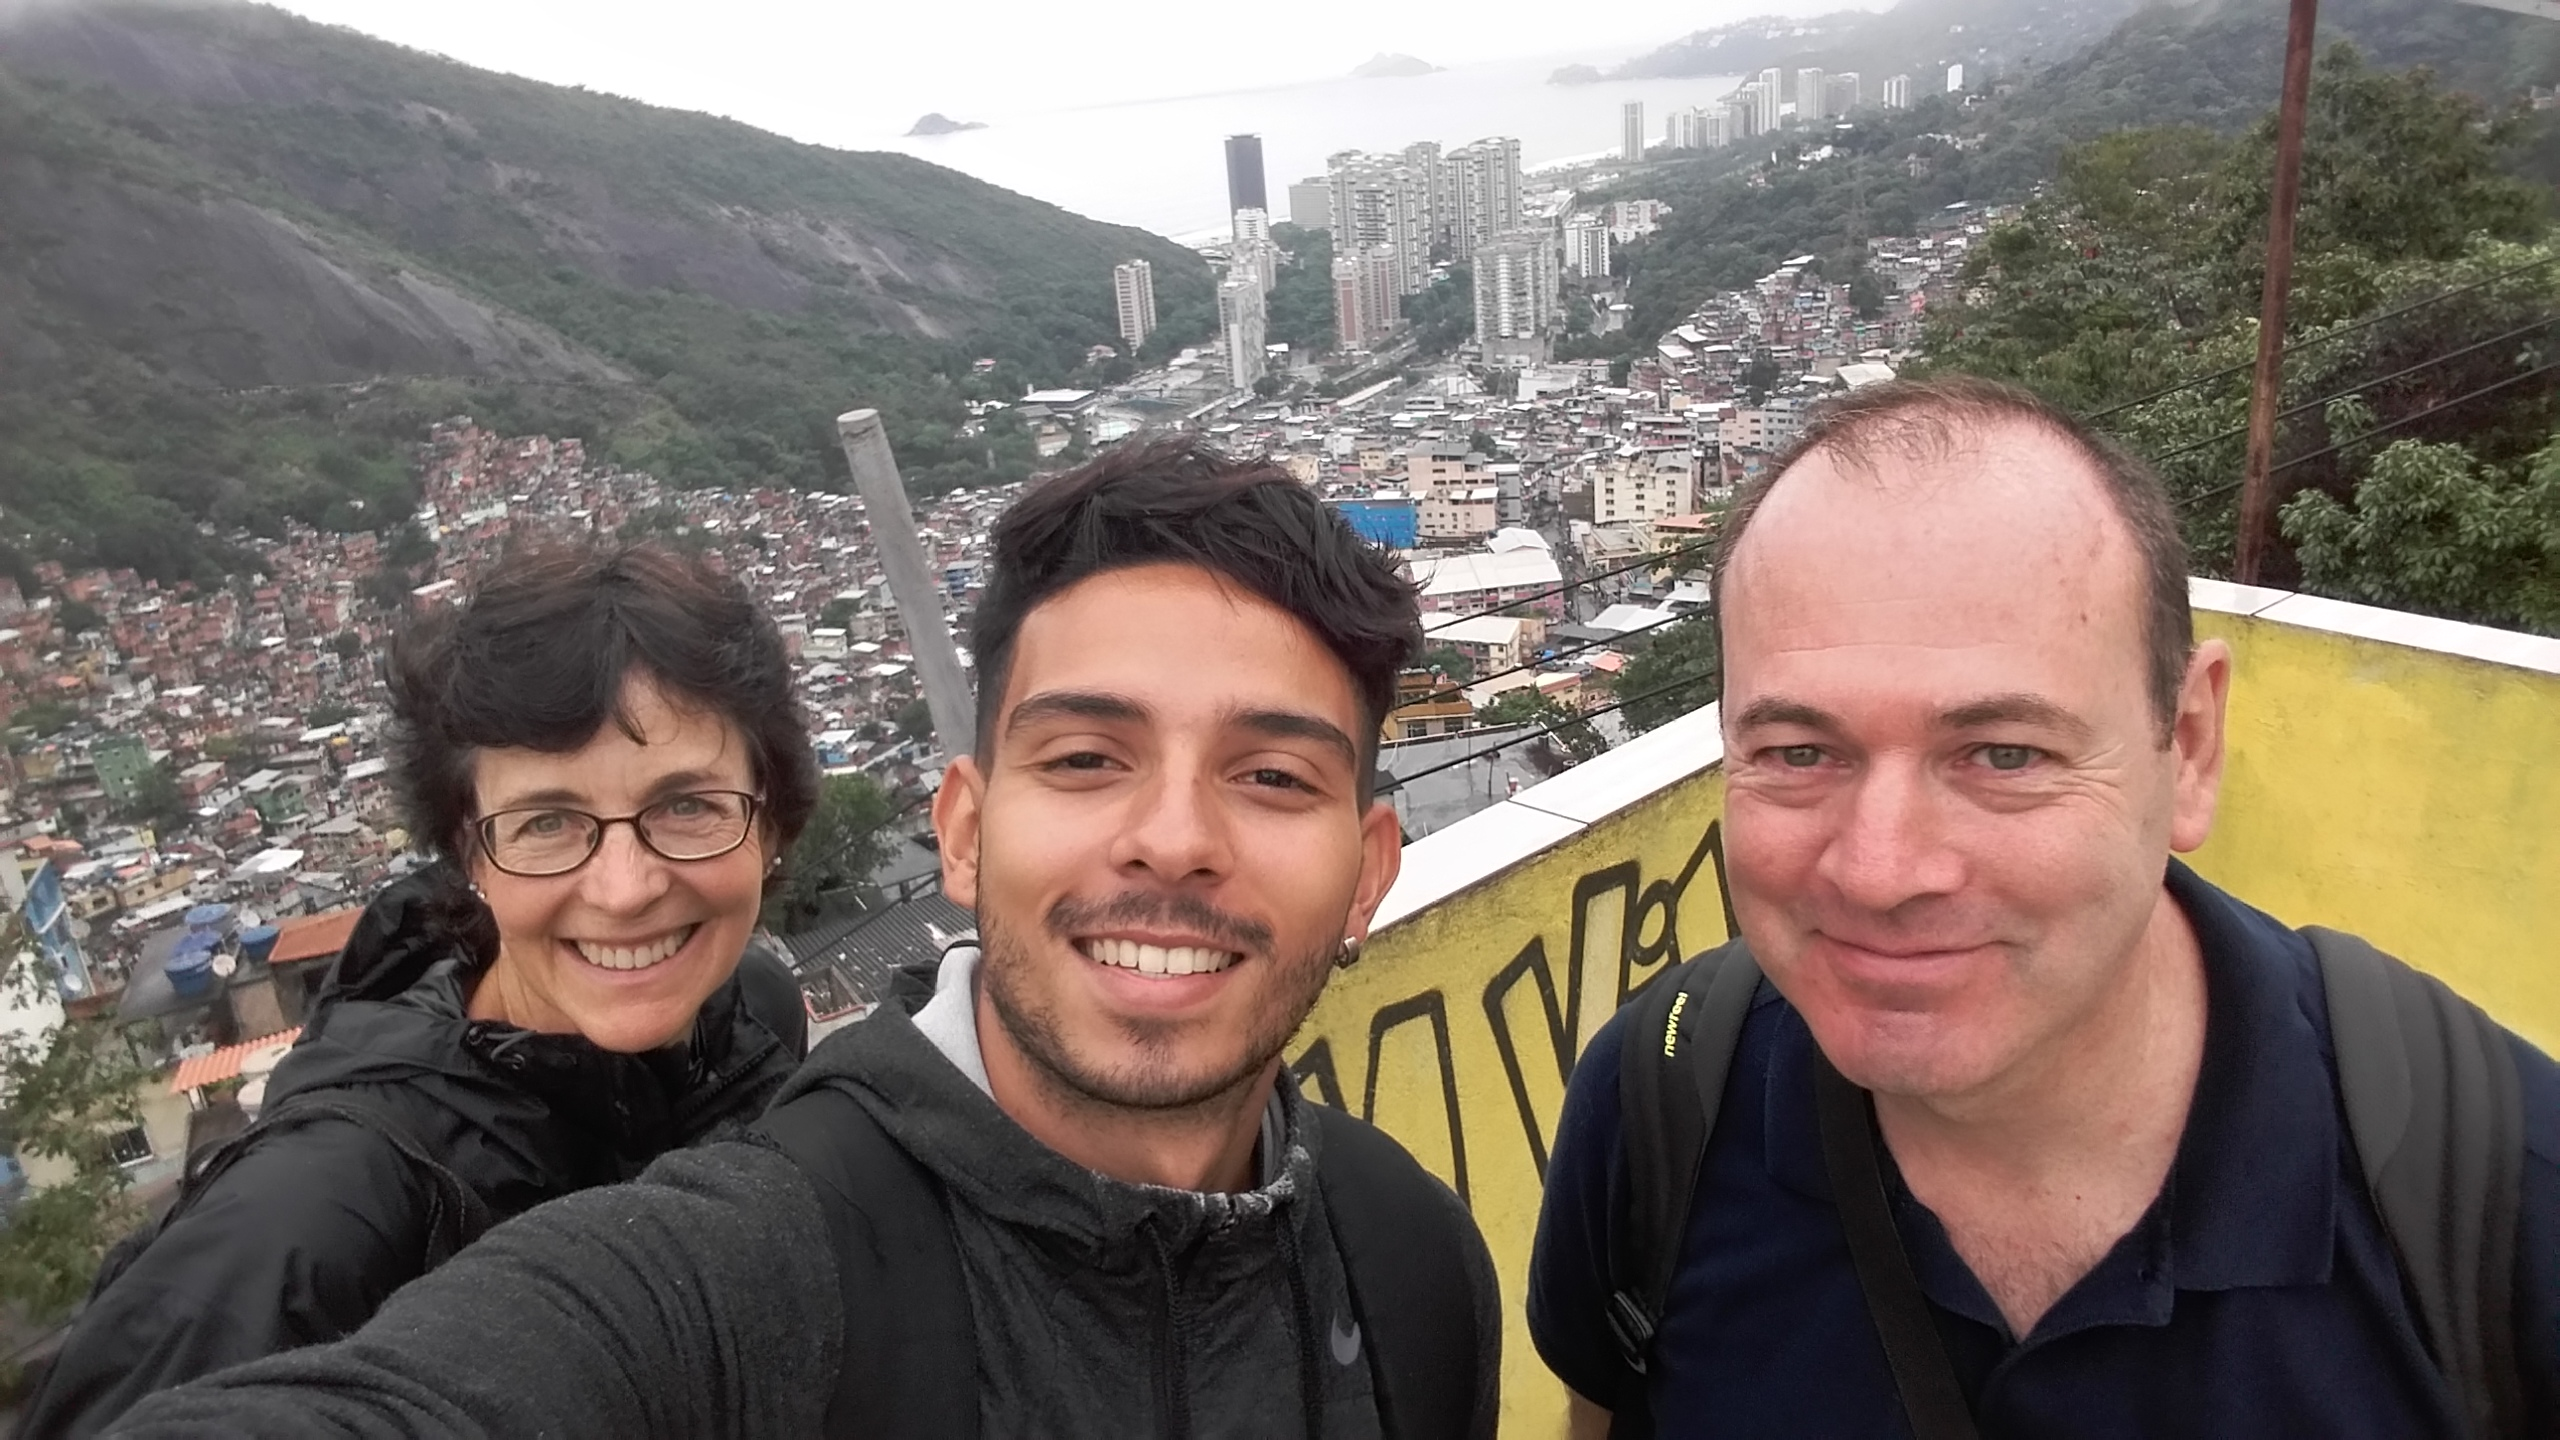 Wonderful Rocinha. Students on a slab with panoramic view of the favela. From there it is possible to look how big this favela is and also its several types of houses.